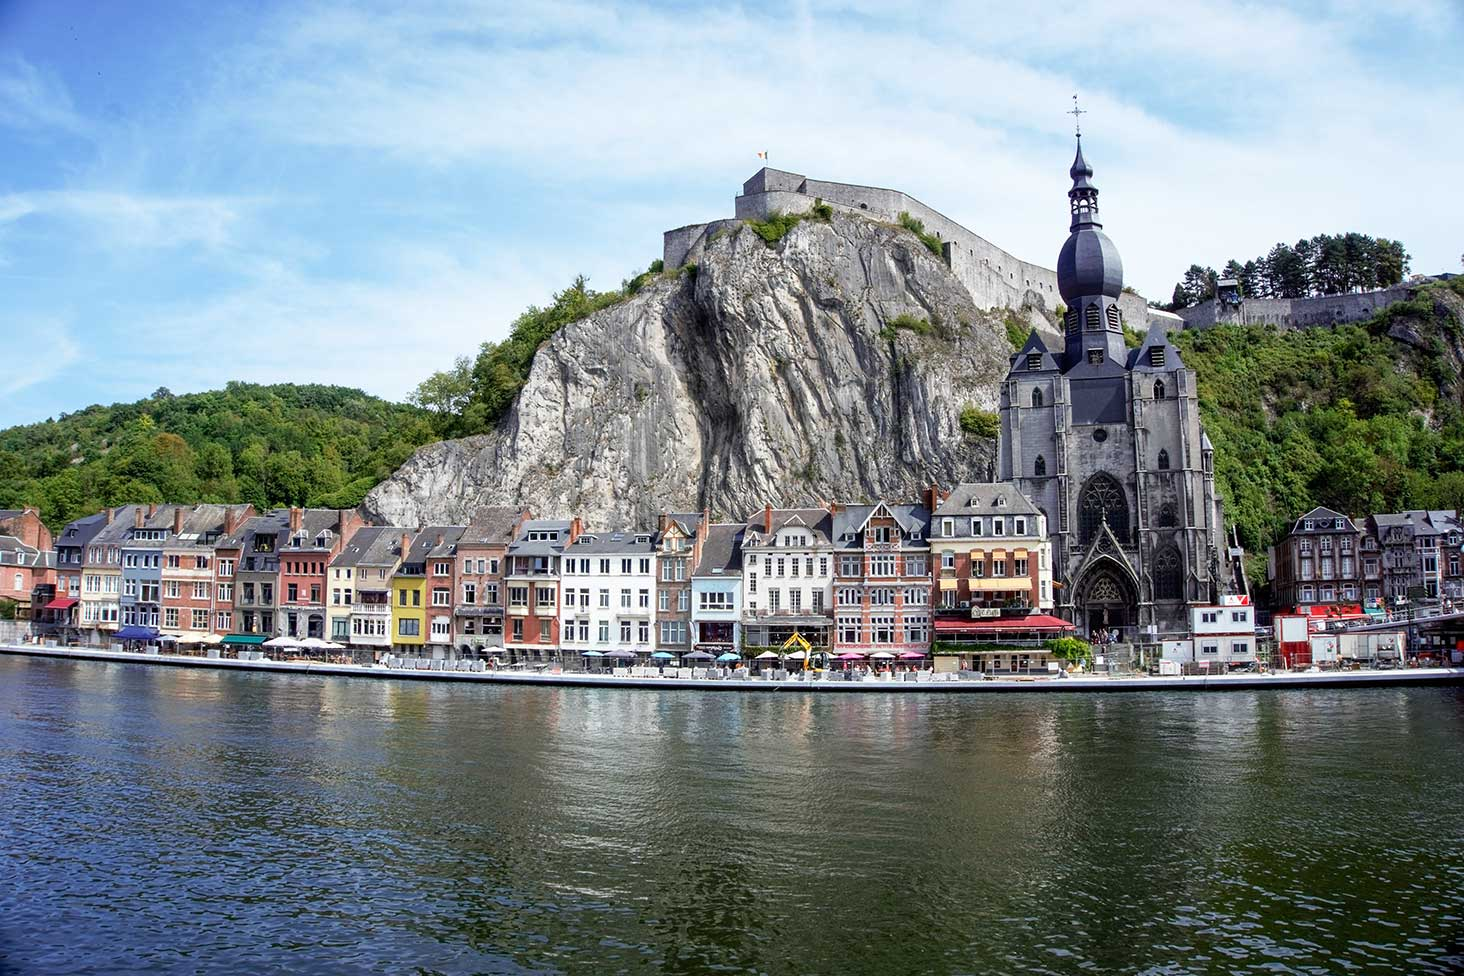 The village of Dinant, Belguim located on a river with a rock behind it.